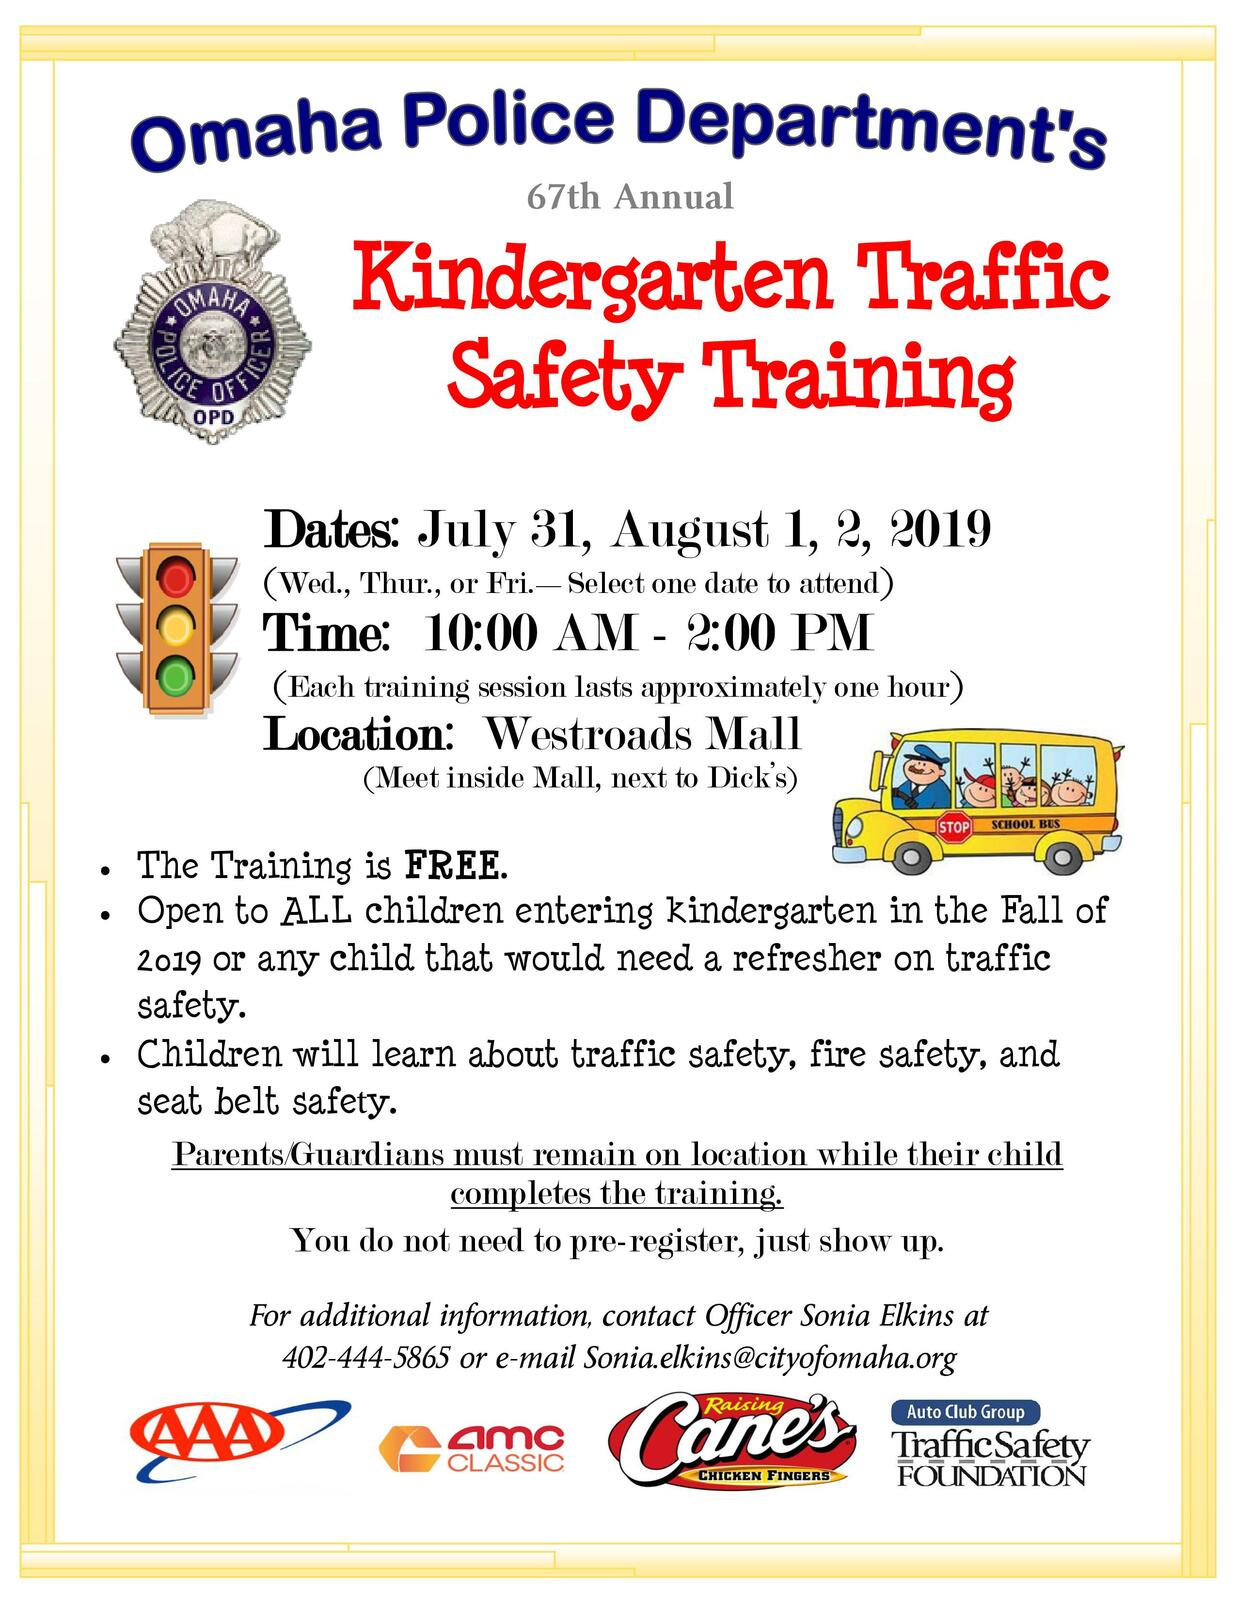 Kindergarten Traffic Safety Training (Omaha Police